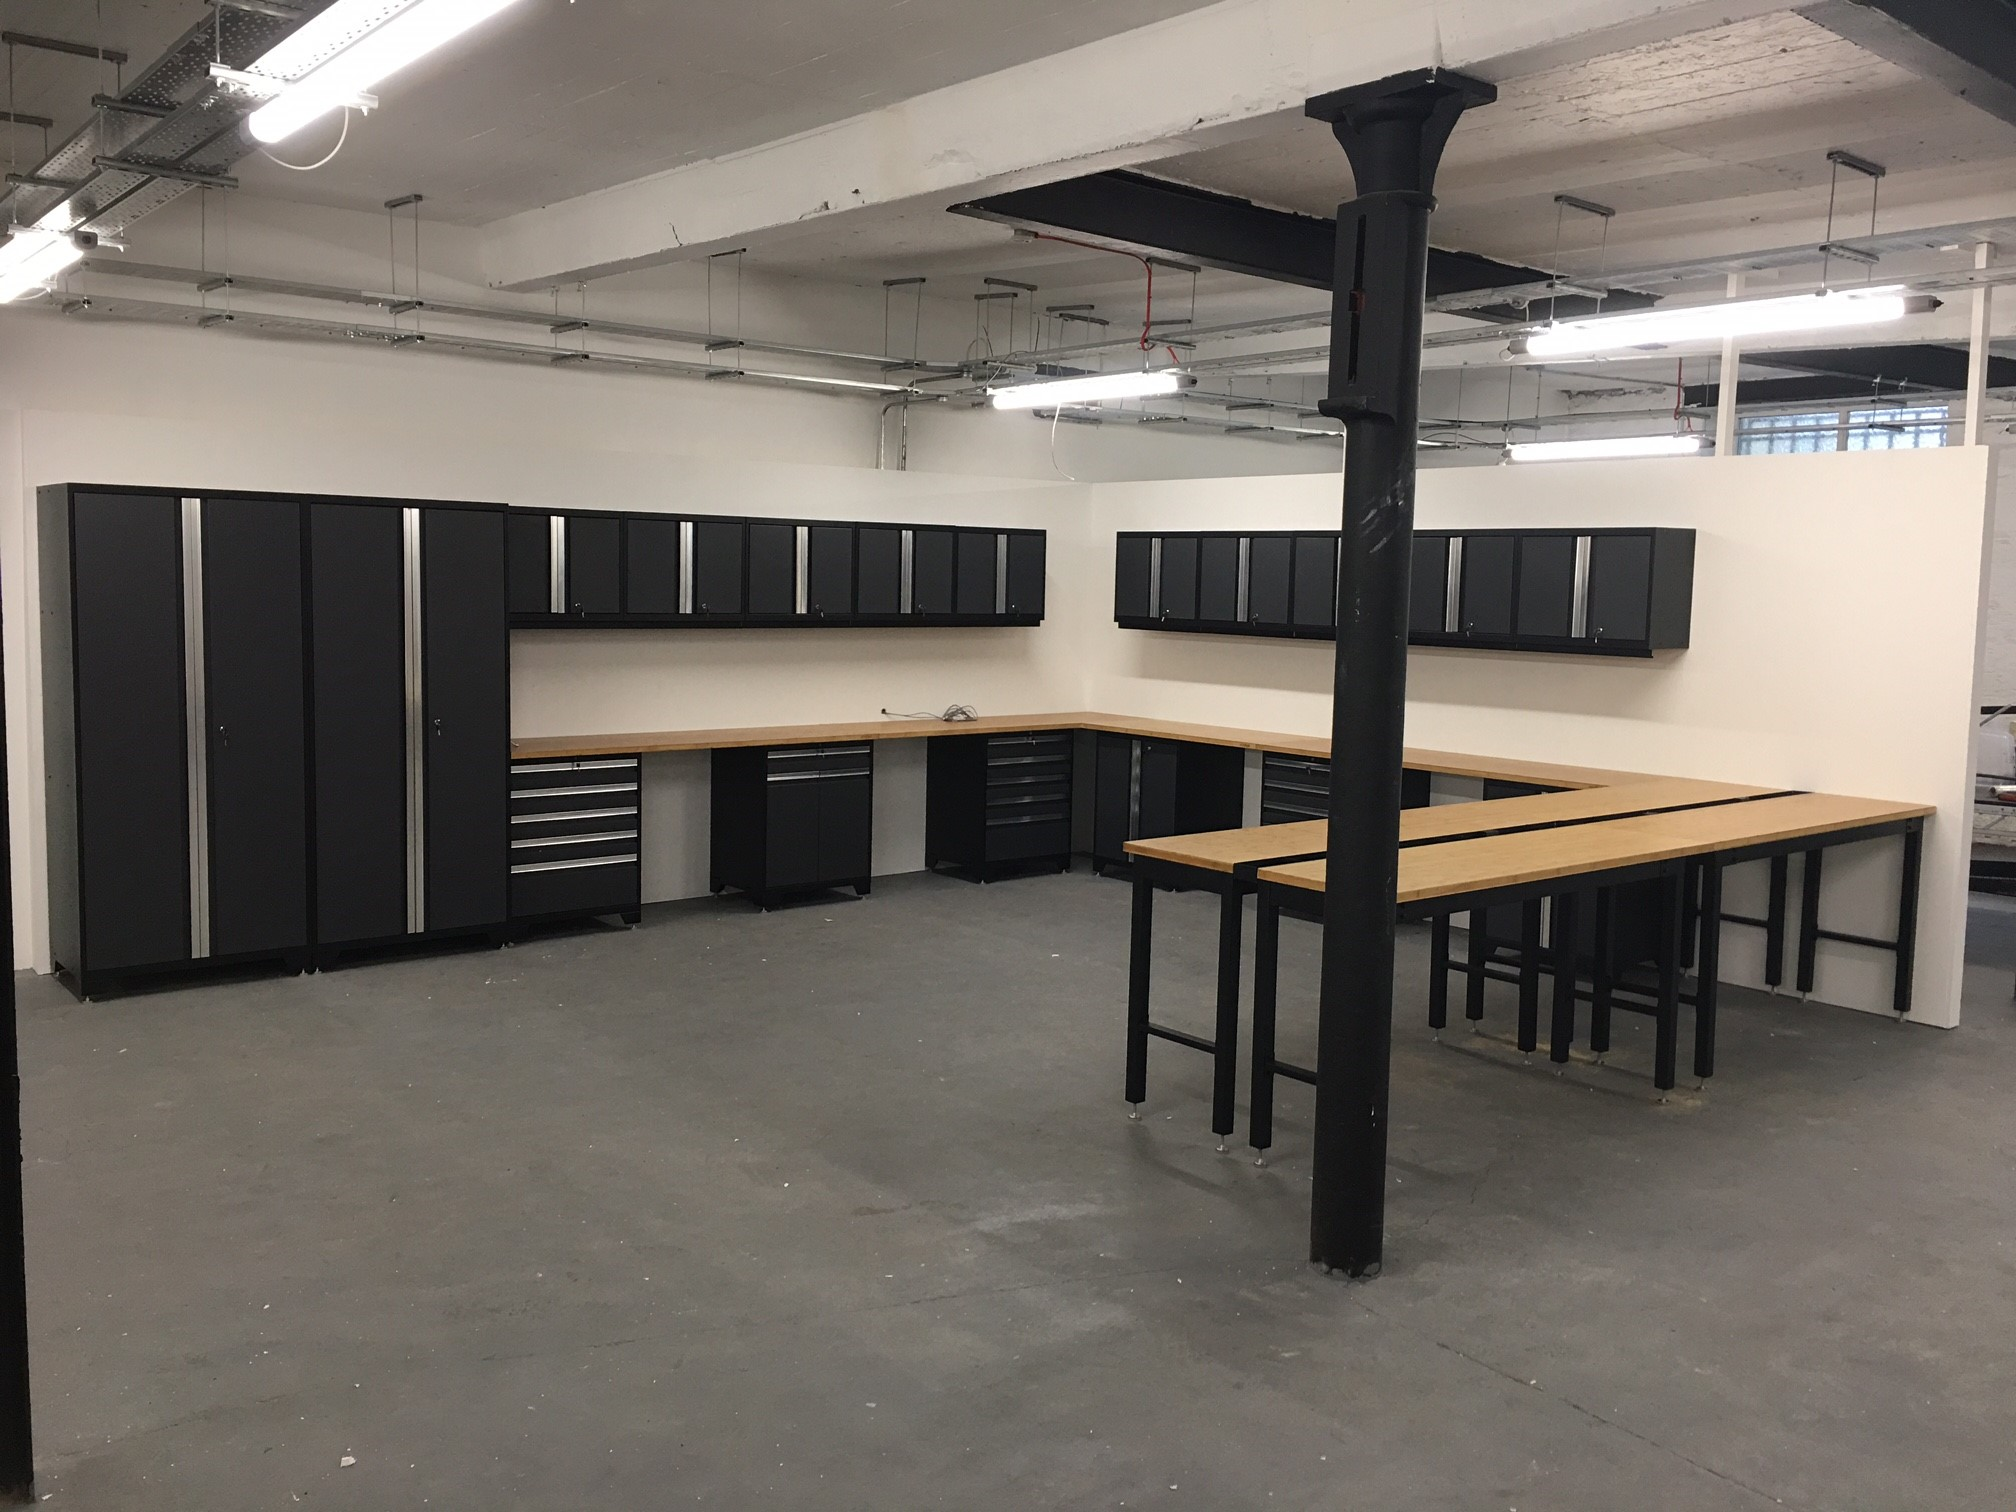 Commercial customer's Pro Series cabinets and workbenches now installed. Similar arrangements available with the premium Bott Cubio range (10 years warranty)